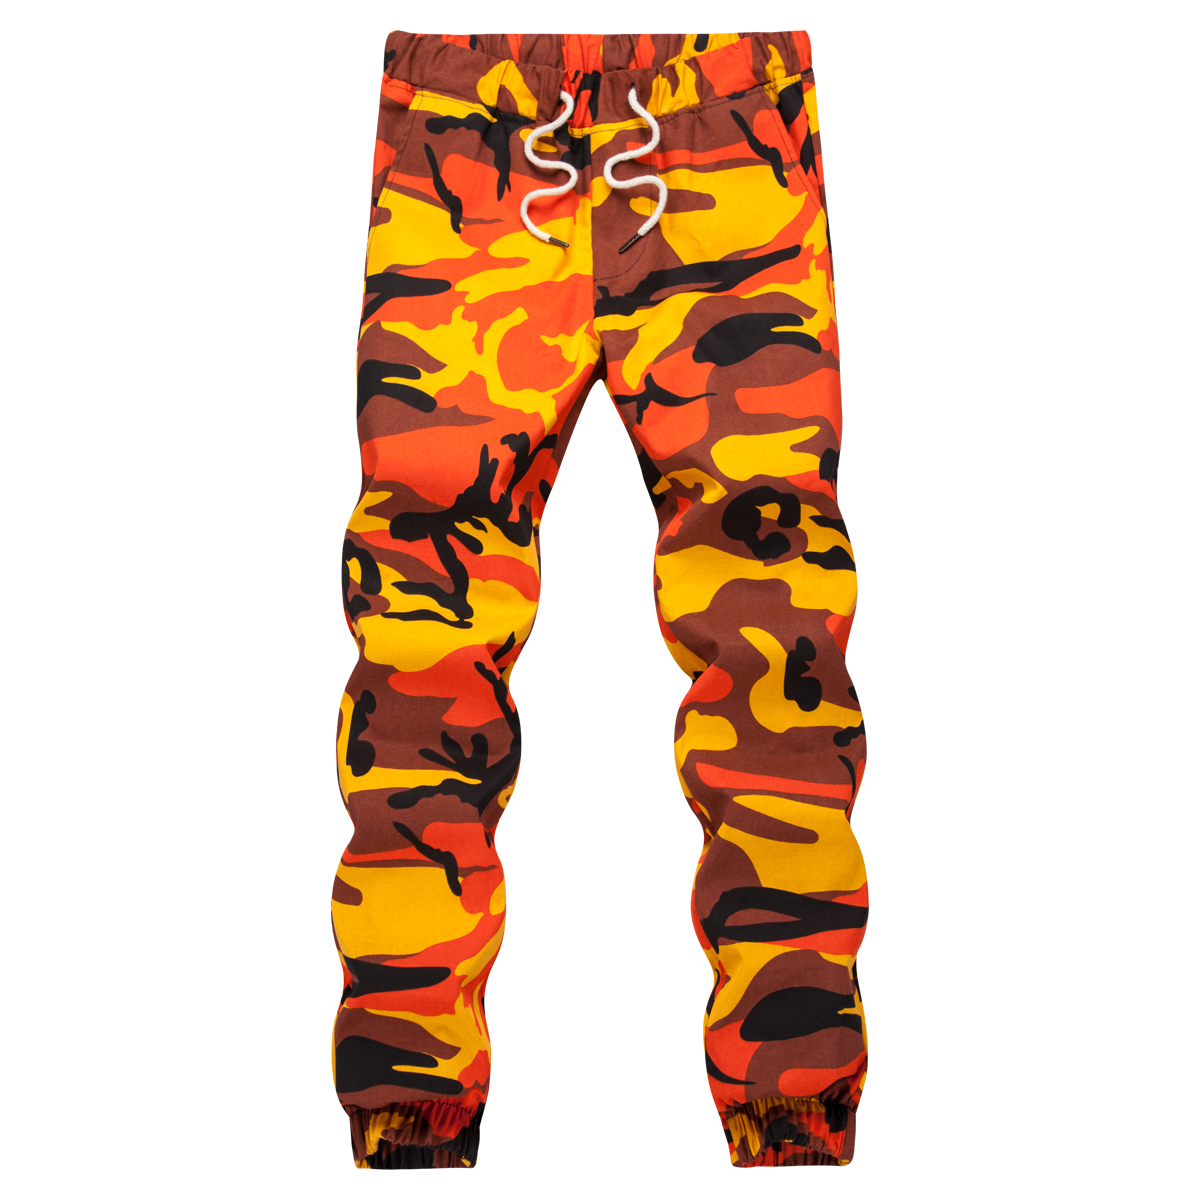 Ins Orange Camouflage Jogger Pants Men Hip Hop Woven Casual Pants Tactical Military Trouser Pockets Cotton 2019 Sweatpants